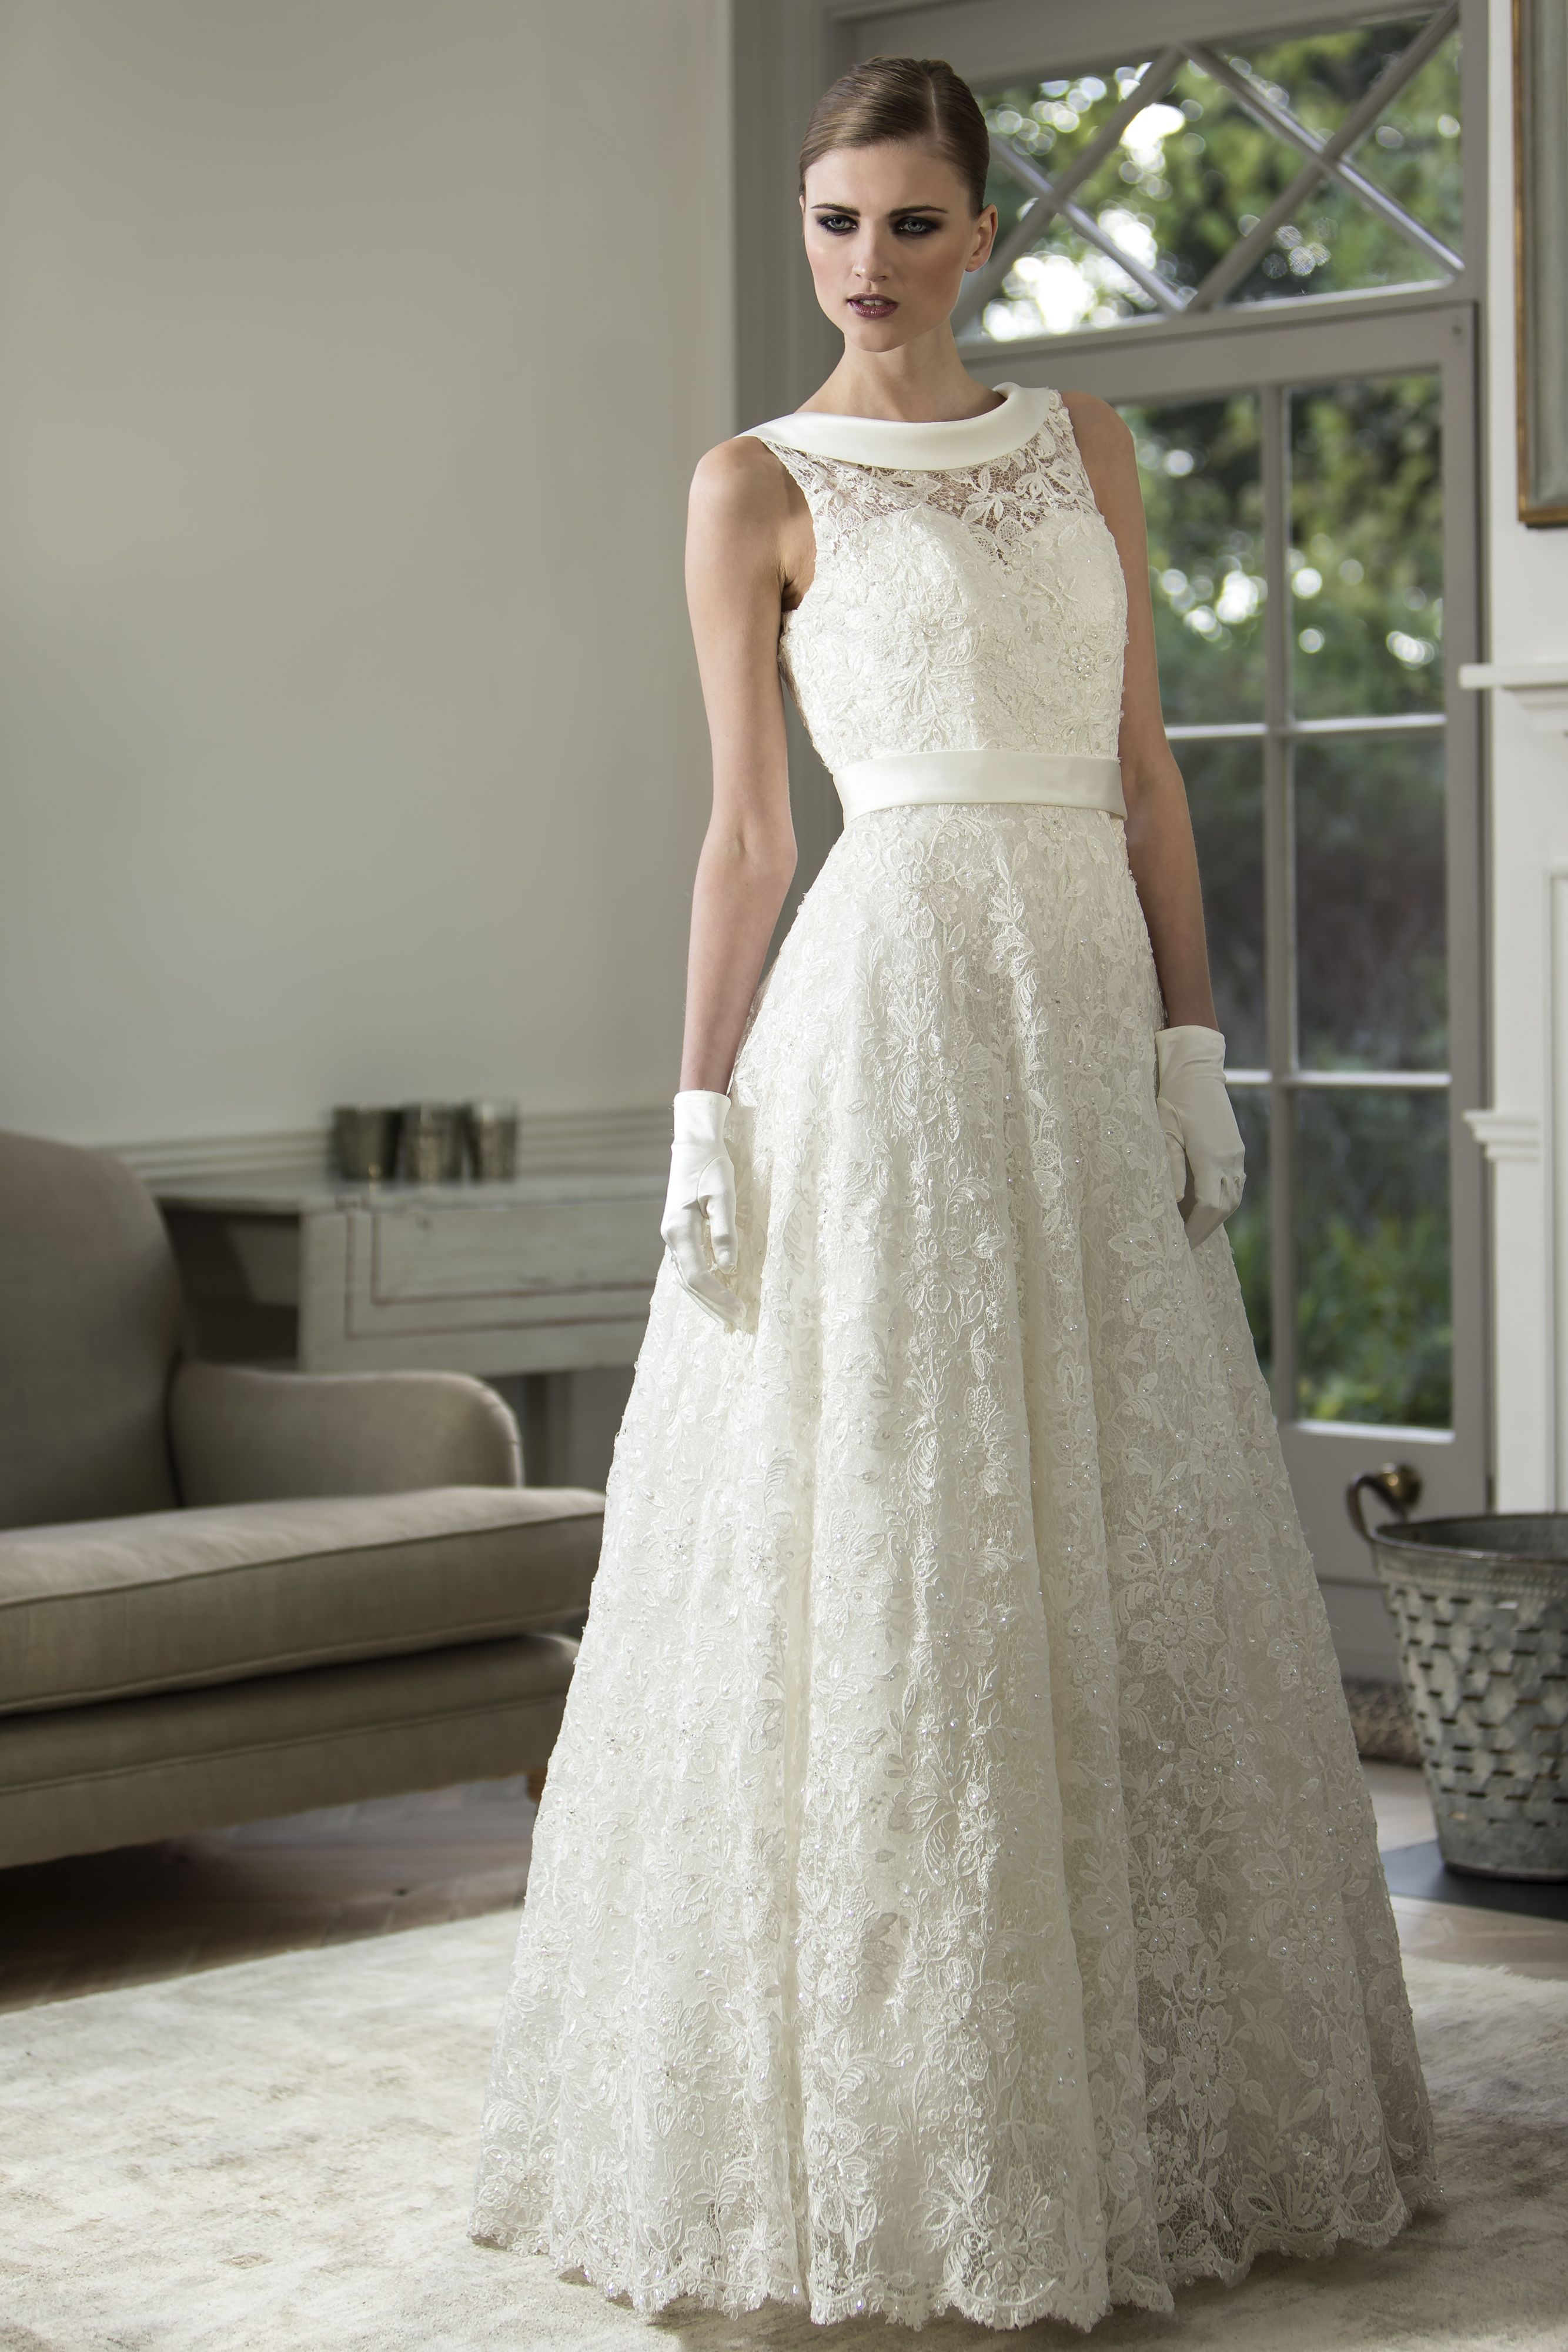 Nicki flynn eloise stunning aline guipure lace bridal gown with